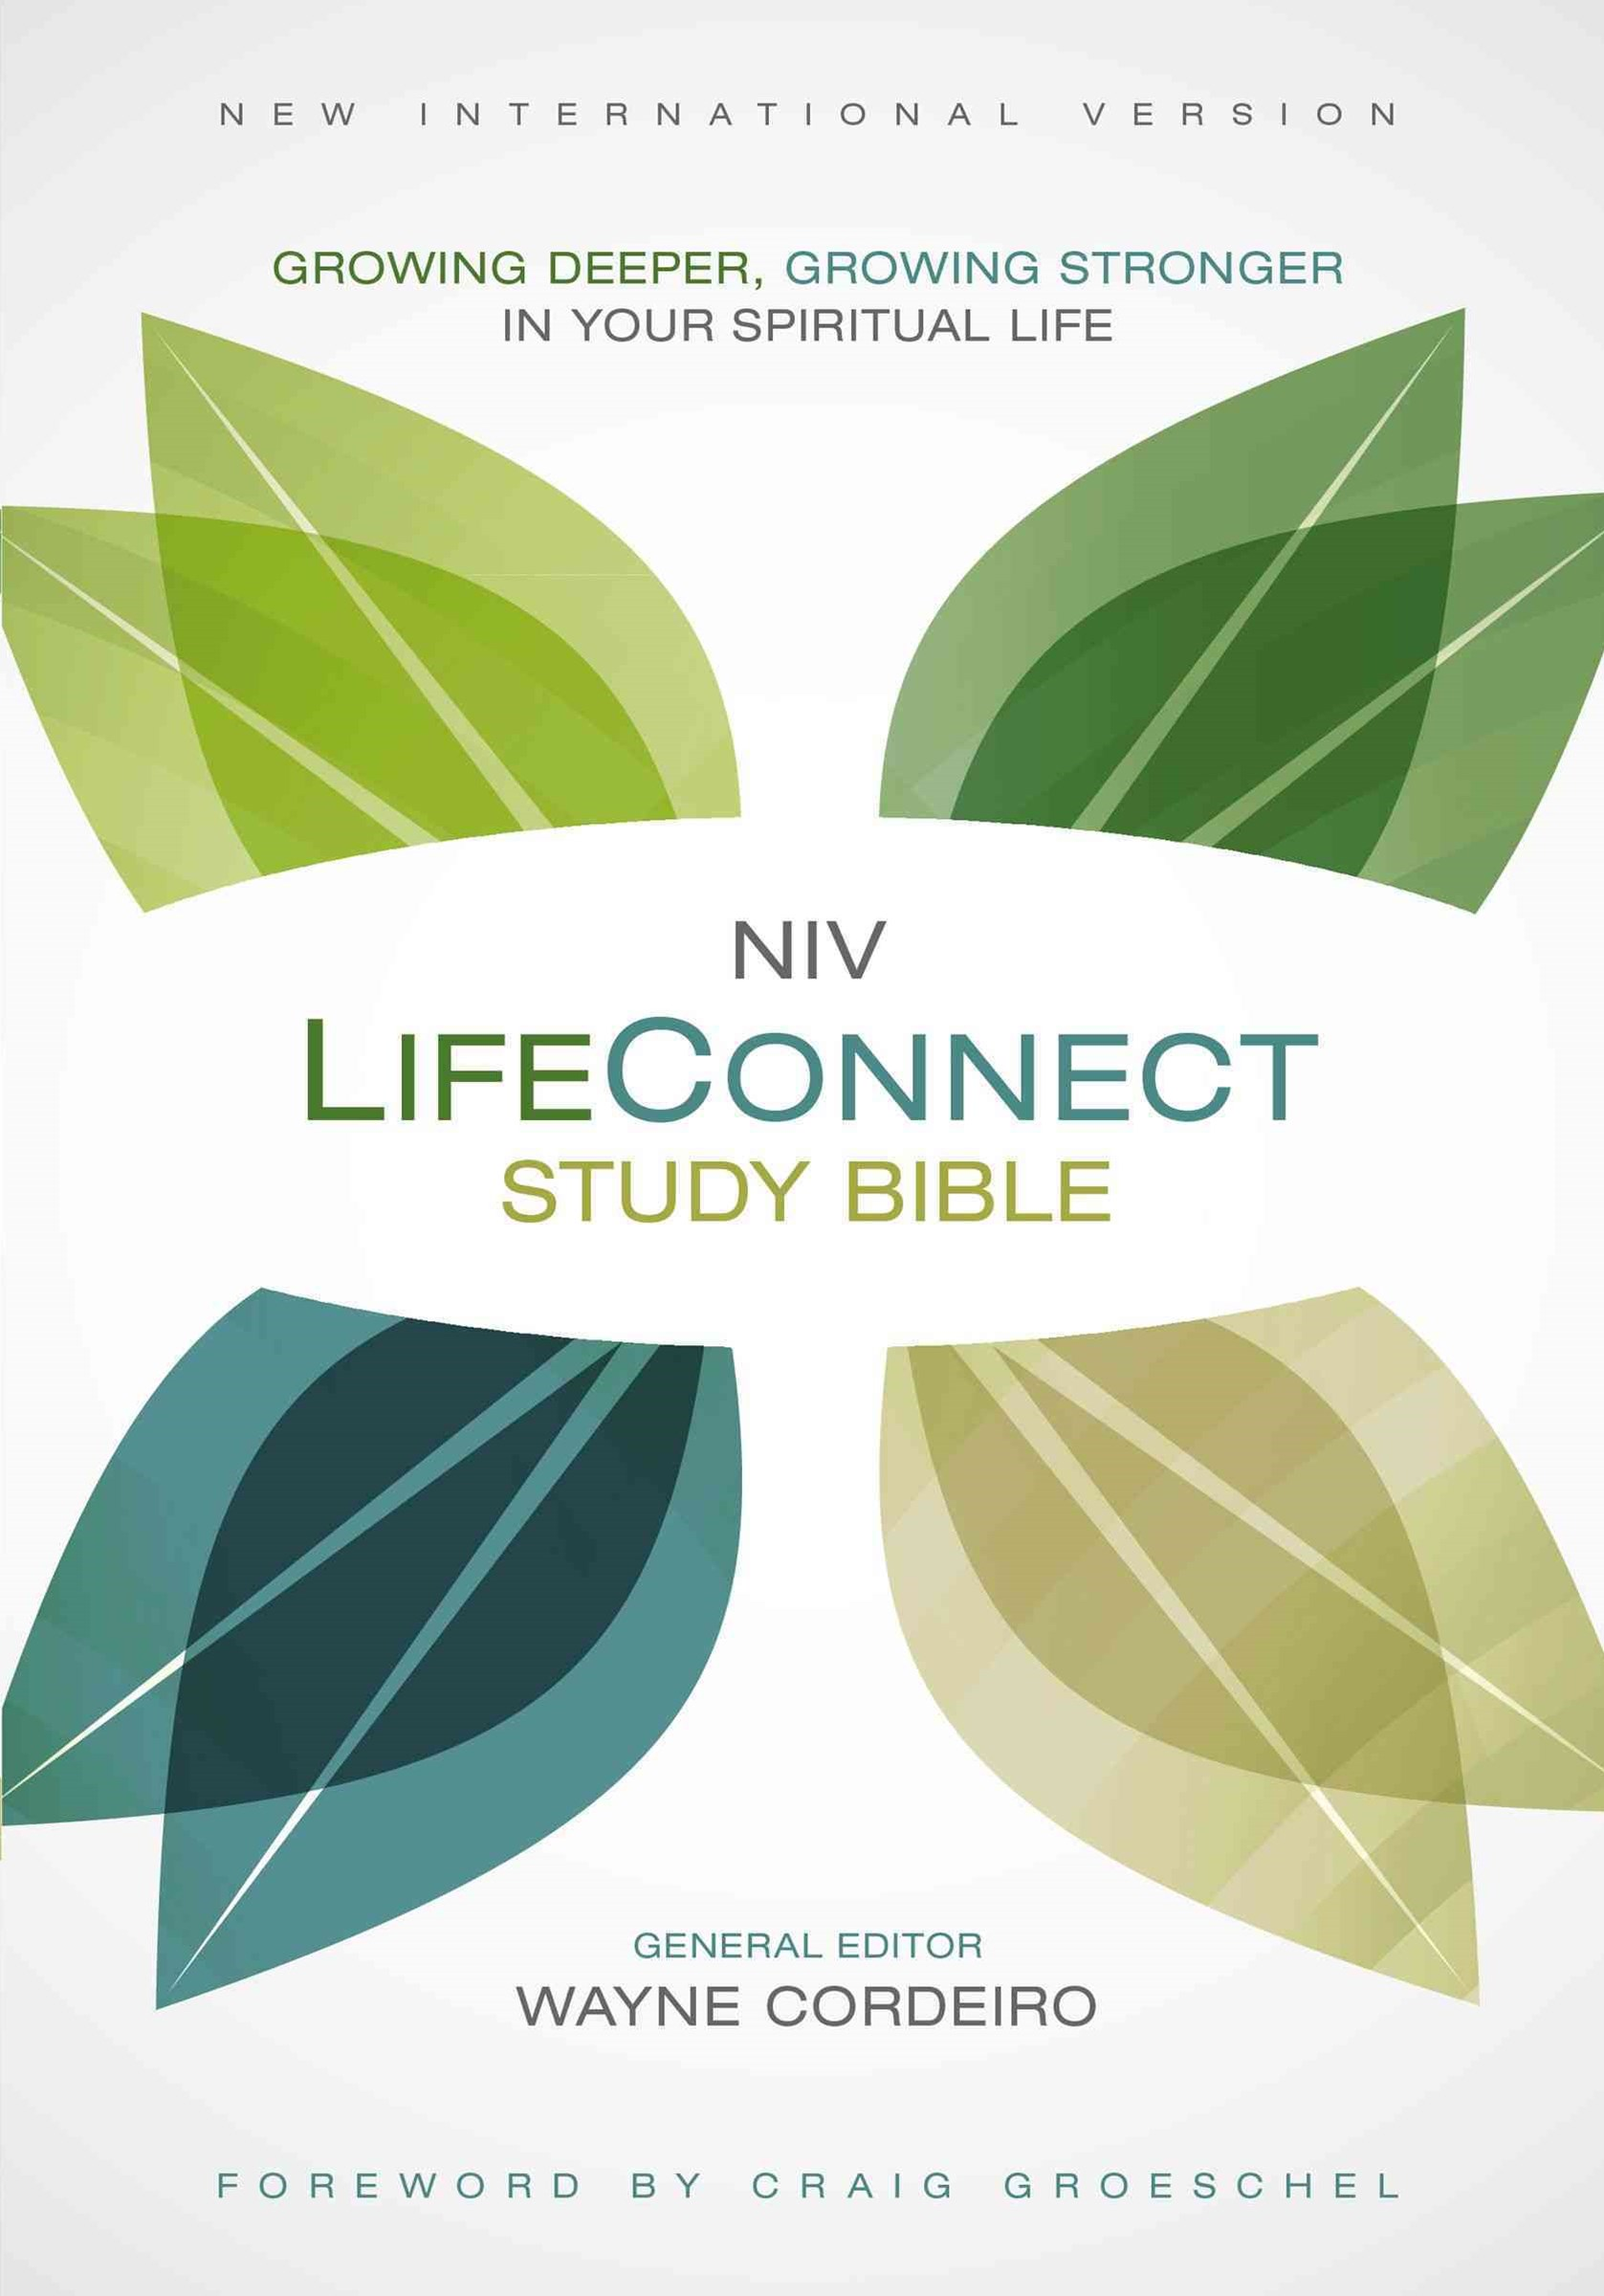 NIV Life Connect Study Bible: Growing Deeper, Growing Stronger in Your Spiritual Life